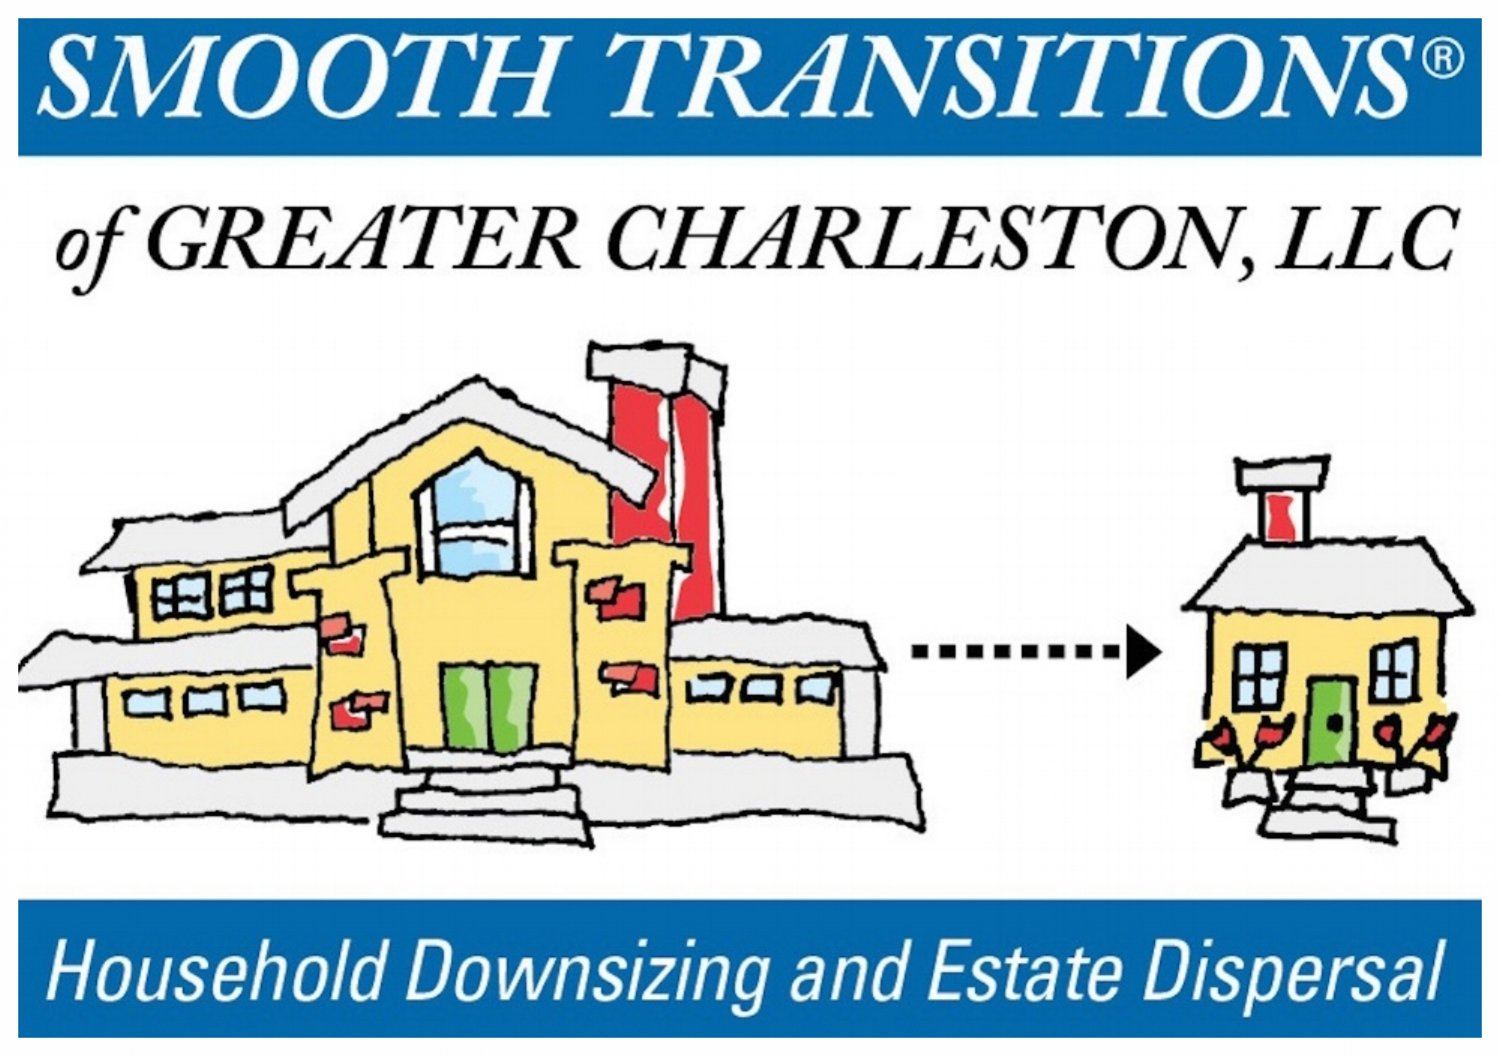 Smooth Transitions of Greater Charleston, LLC